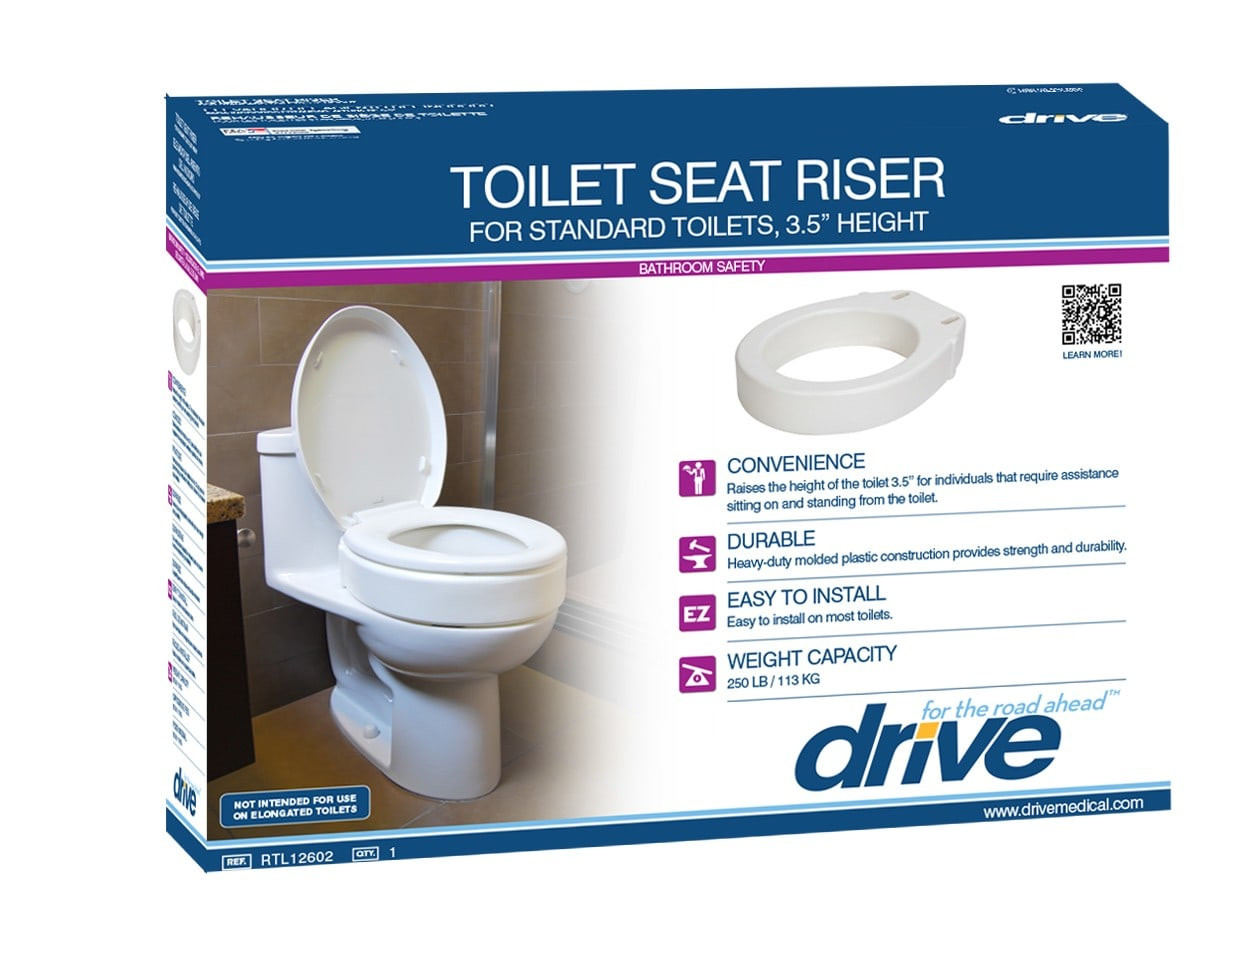 shower chair with arms cvs dining covers target drive medical toilet seat riser model rtl12602 baron